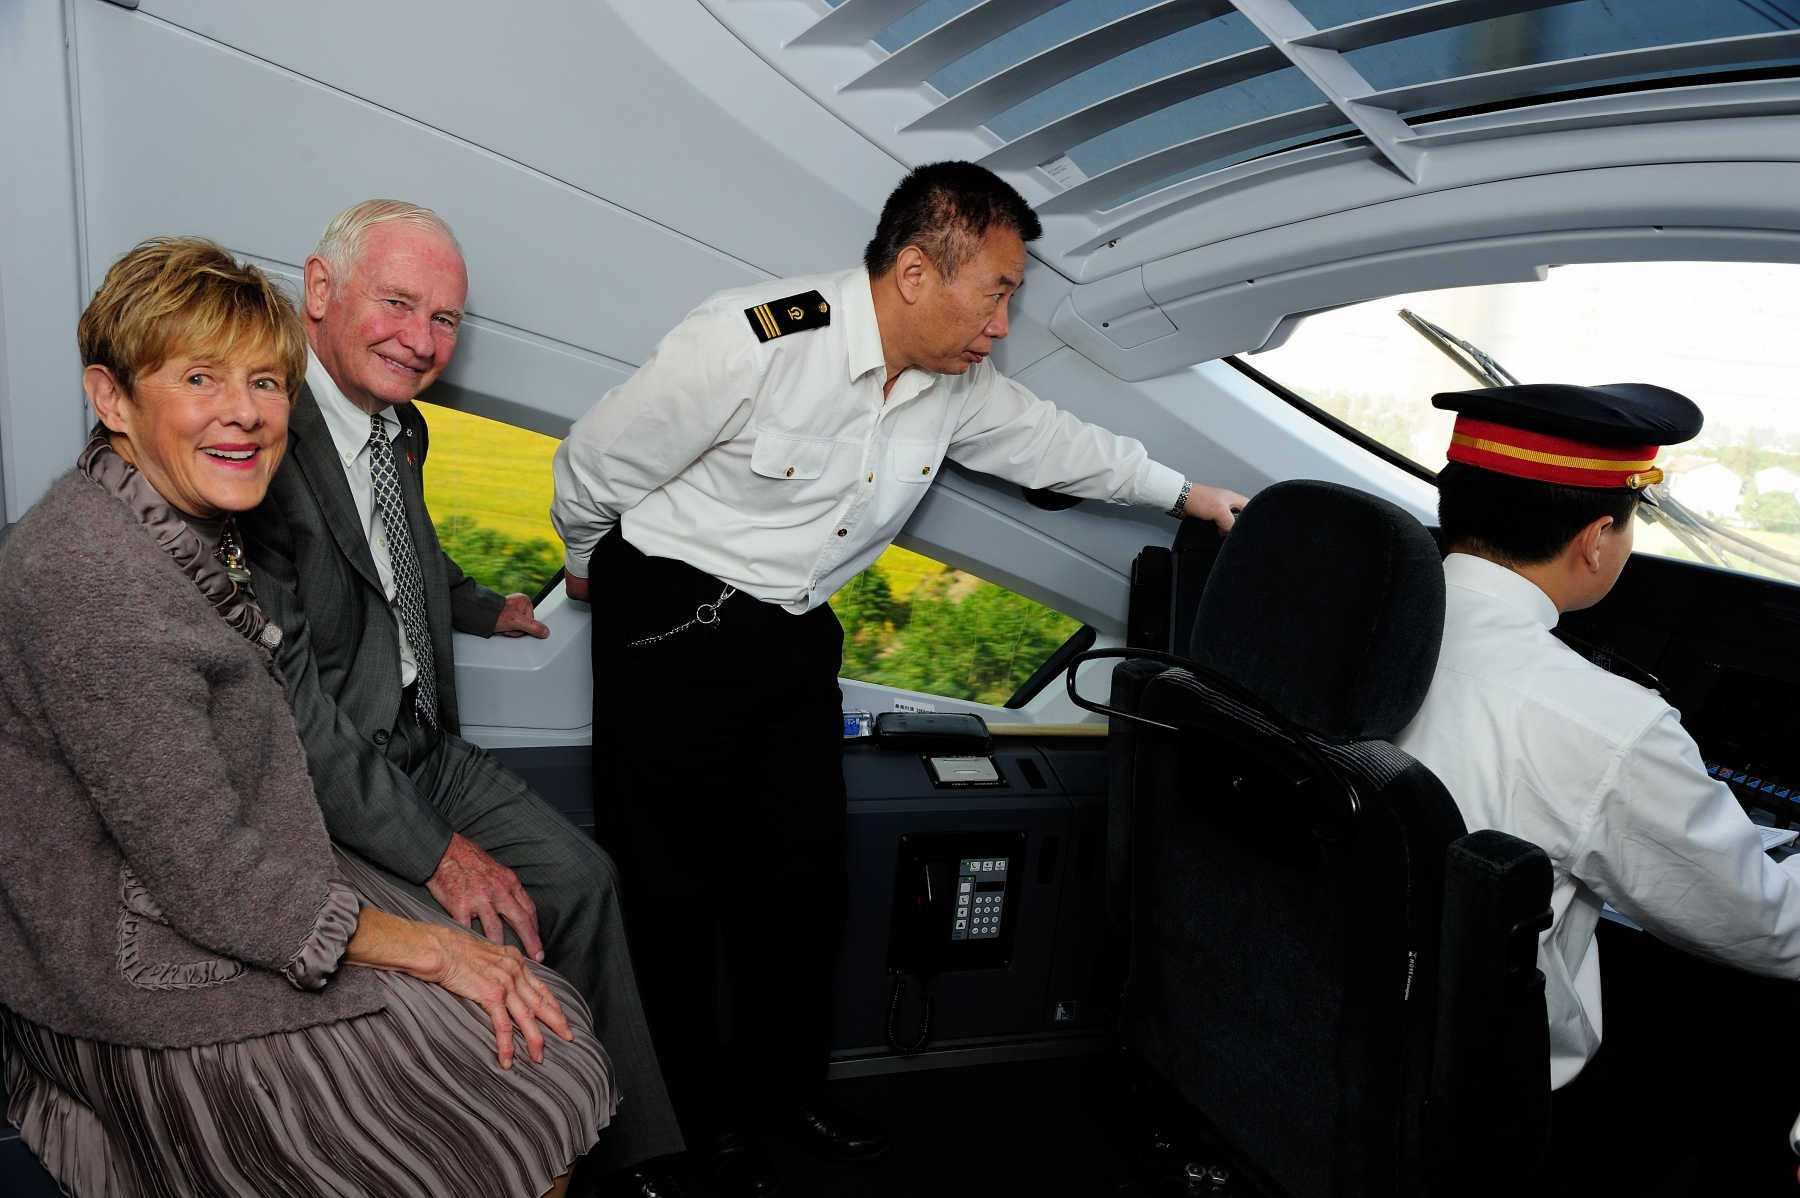 Their Excellencies traveled via high-speed train from Shanghai to Nanjing on October 21, 2013.